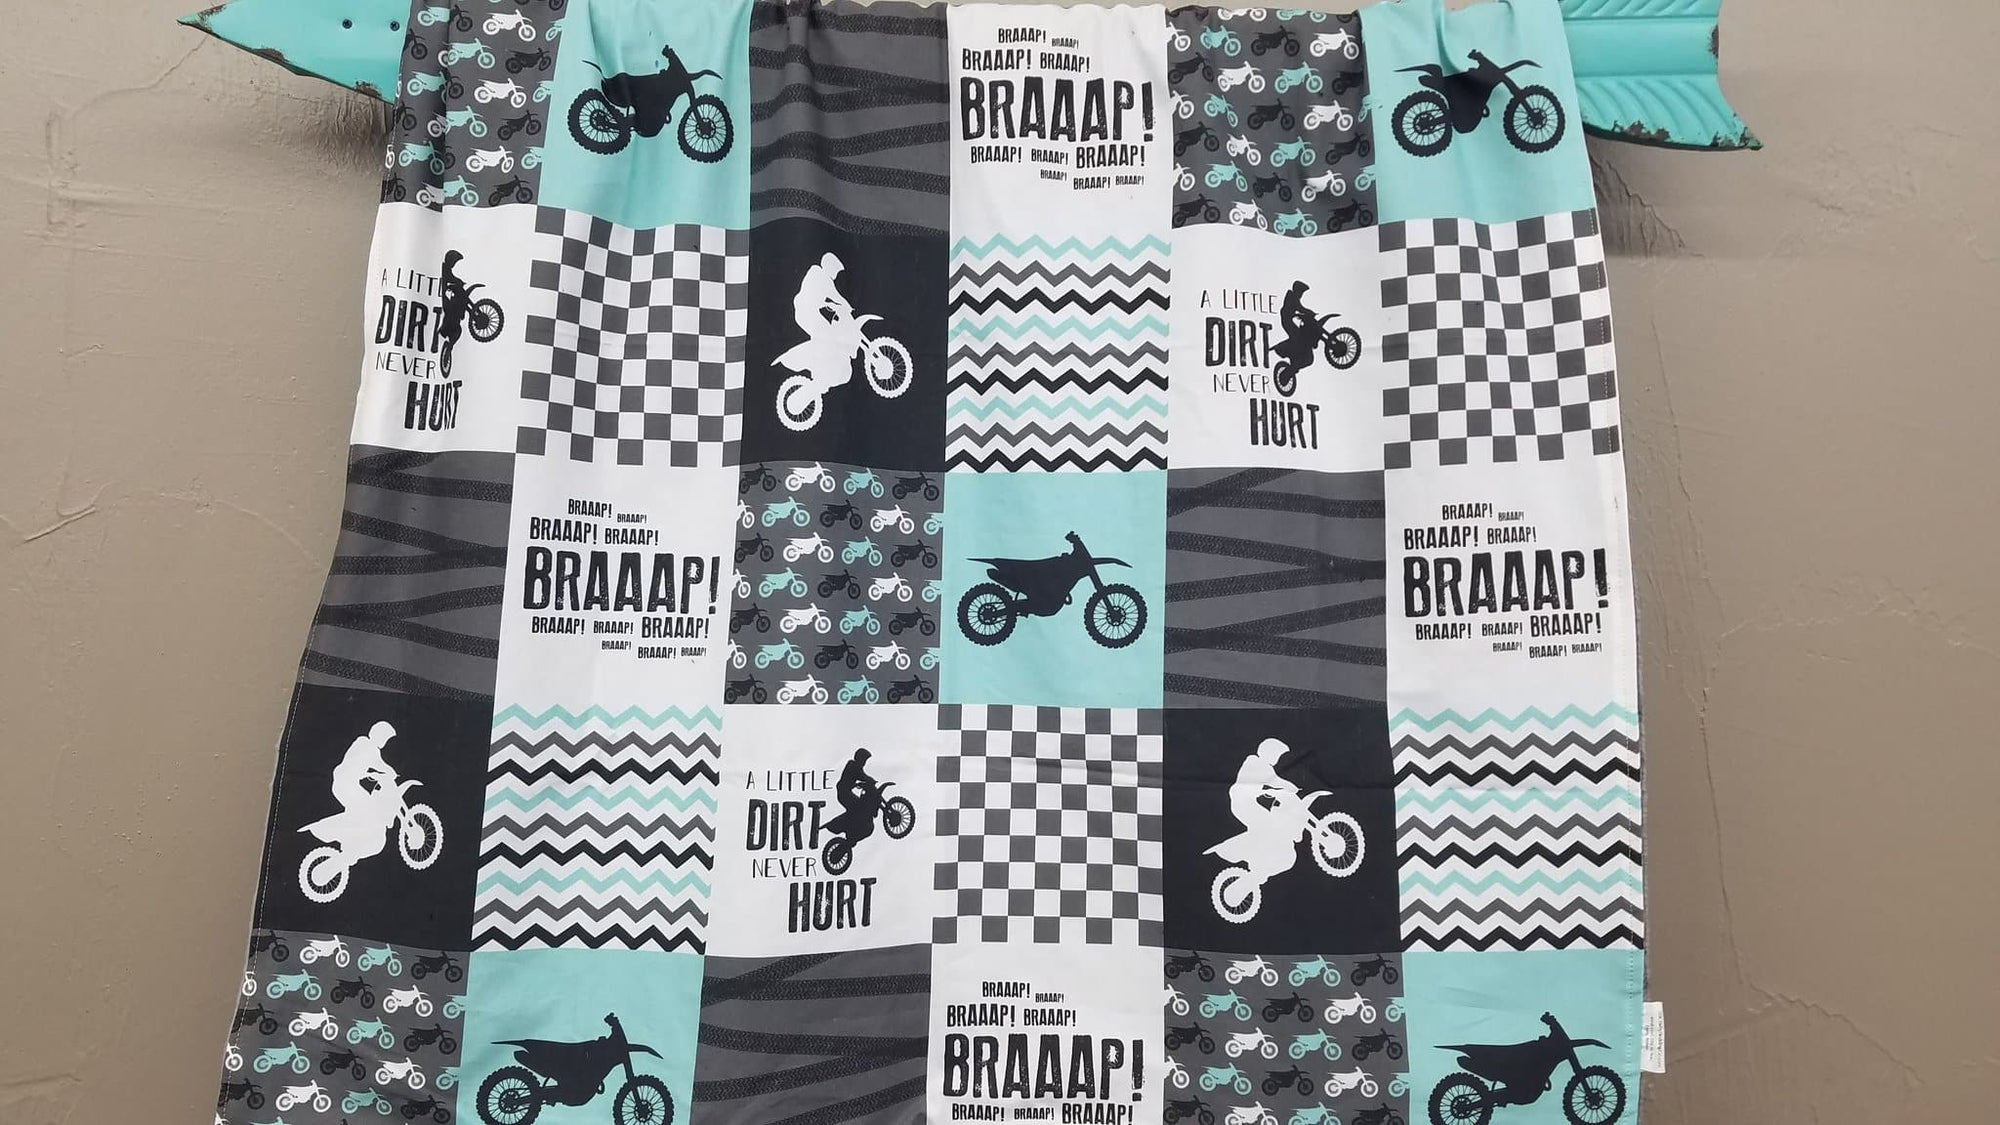 Blanket - Dirt Bike Patchwork Print Baby Blanket or Toddler Quilted Comforter